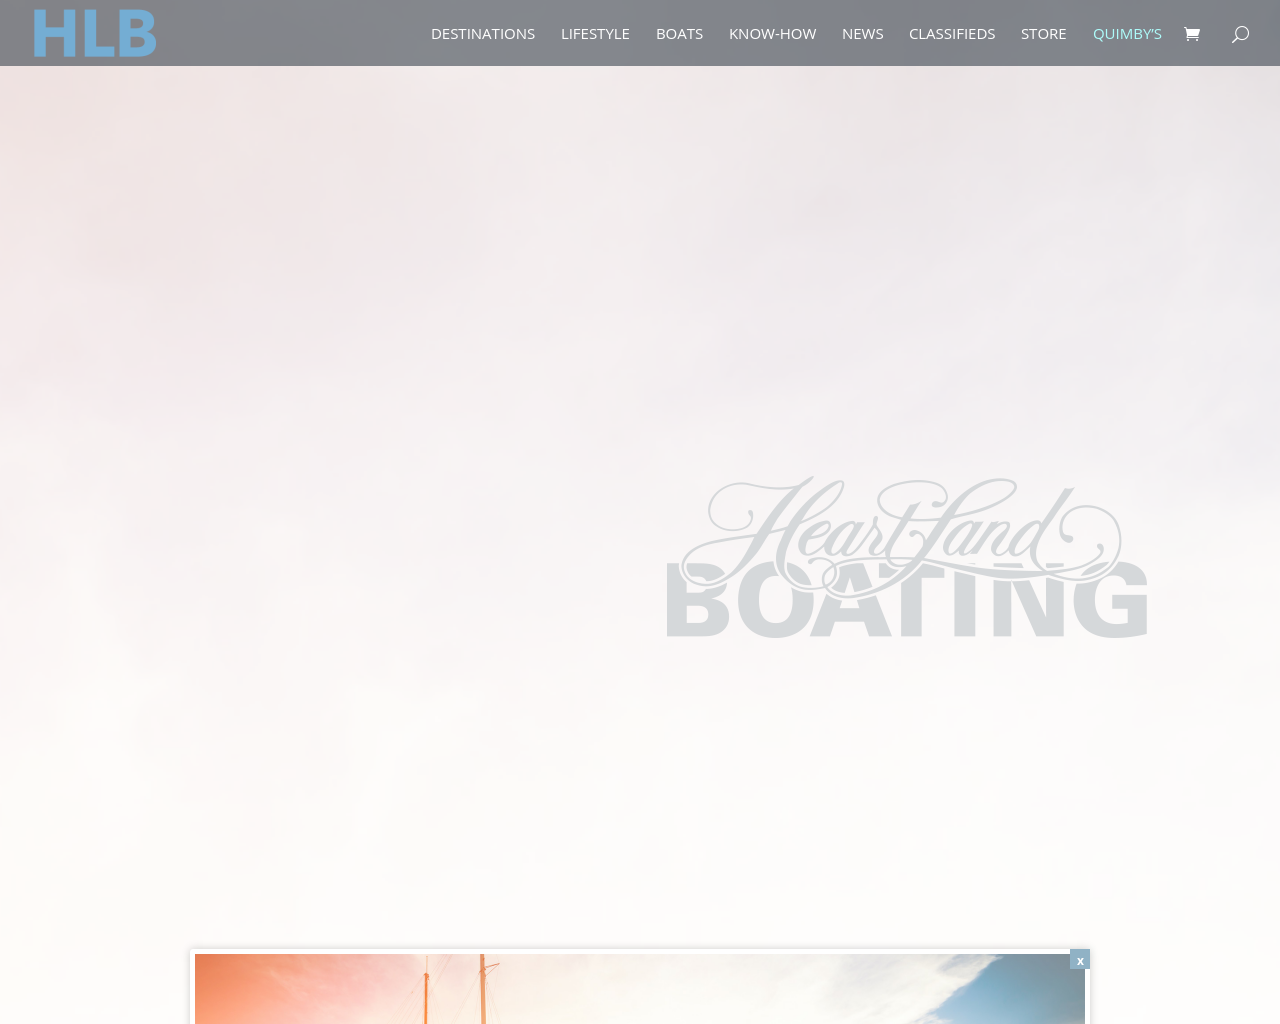 Heart-Land-Boating-Advertising-Reviews-Pricing